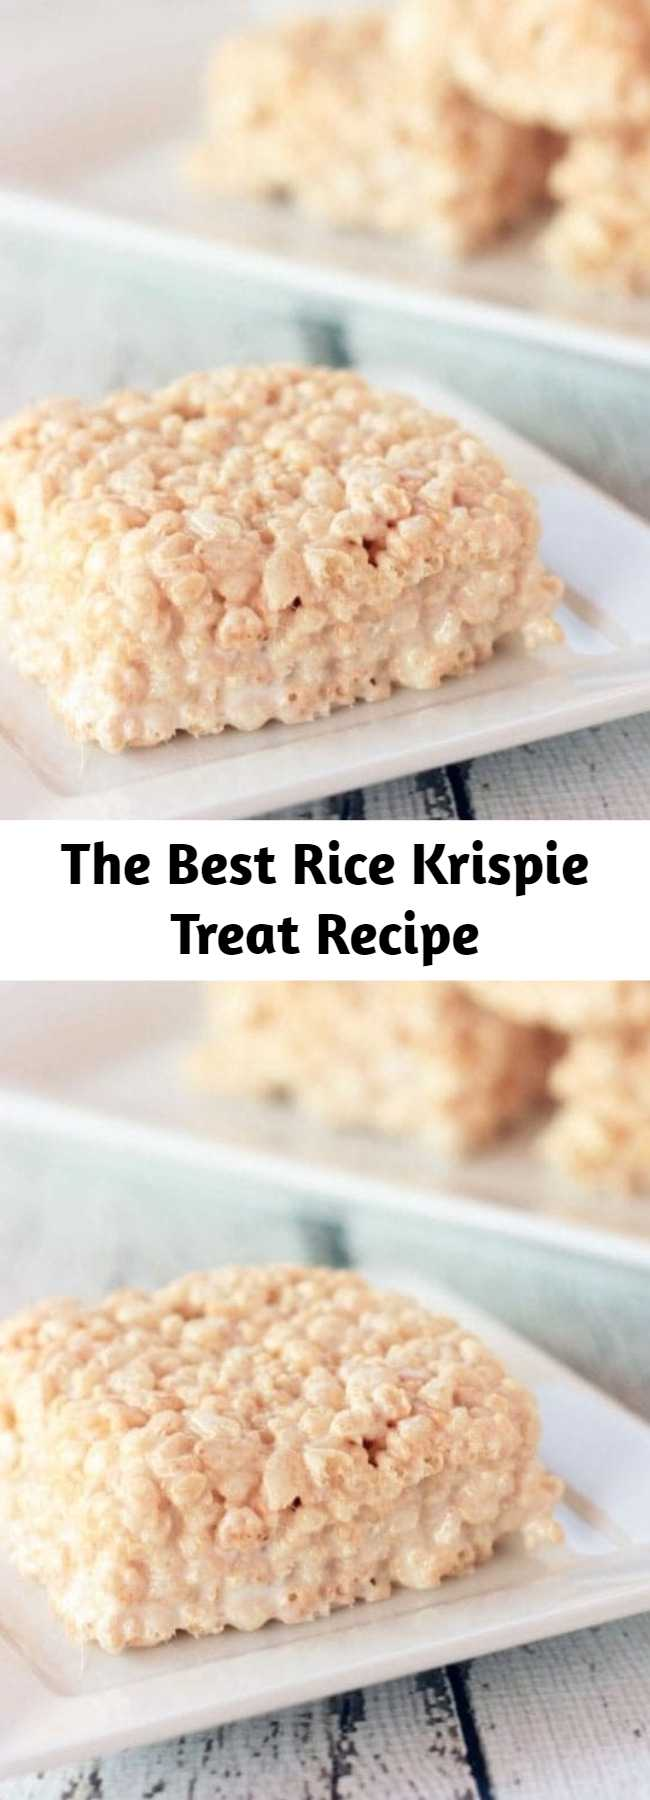 The Best Rice Krispie Treat Recipe - Hands down THE BEST Rice Krispie Treats EVER! These treats are not your back-of-the-box, plain ole' treats. These ooey gooey treats are perfection that you can't resist!